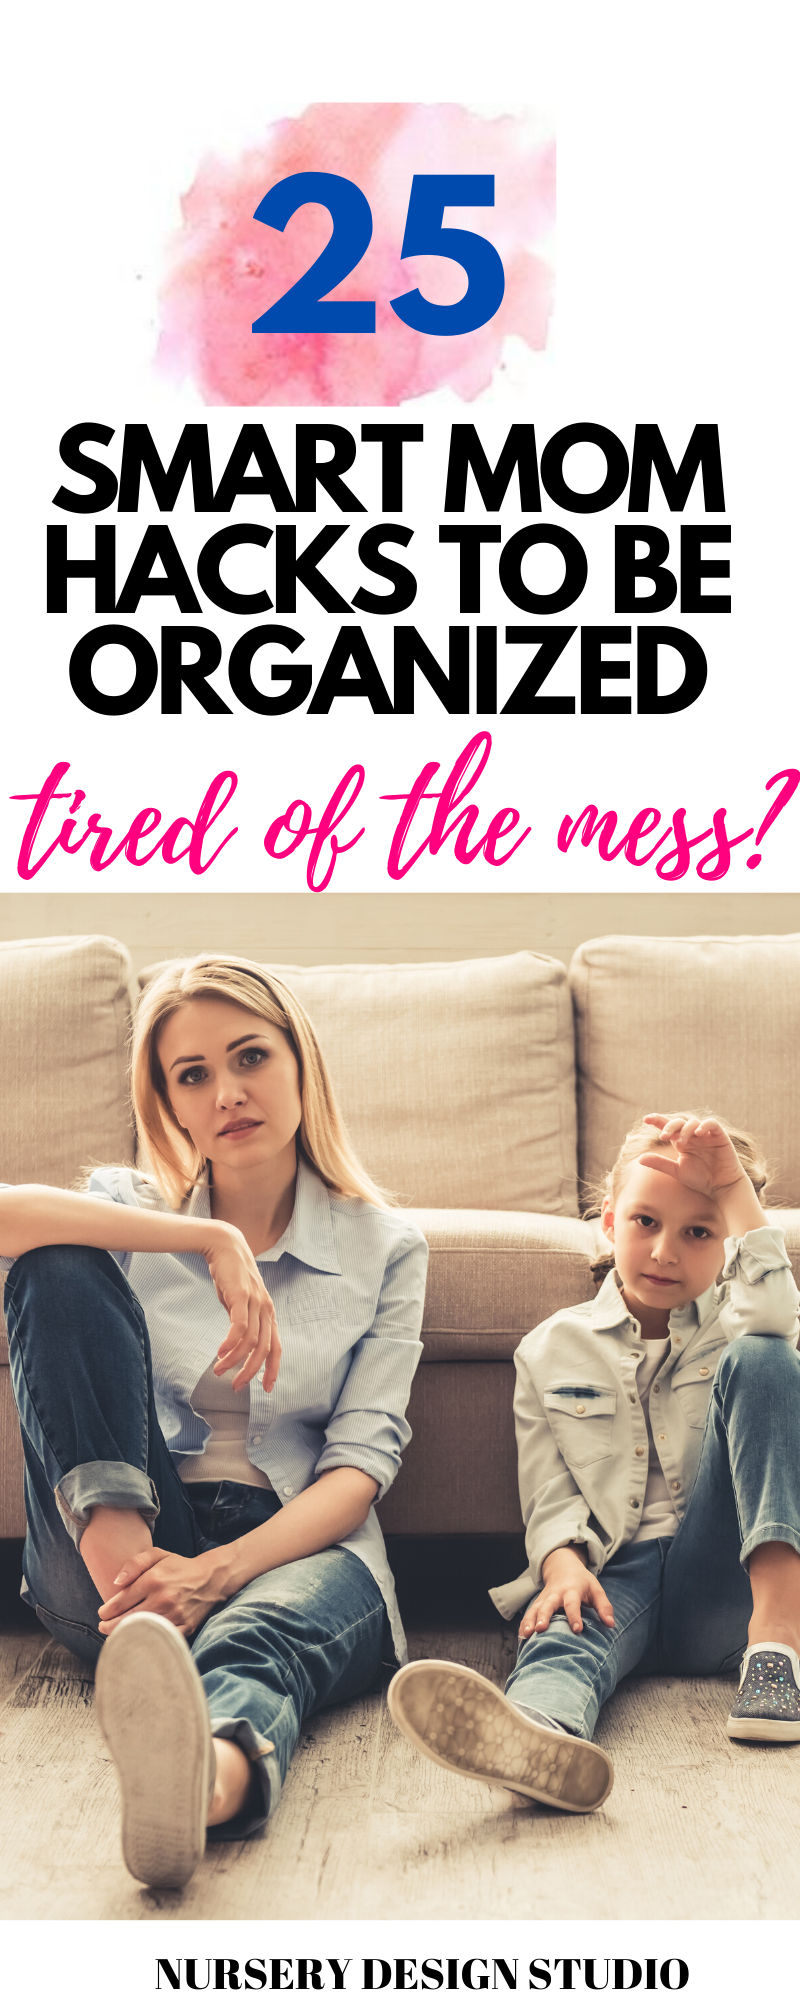 HACKS TO BE ORGANIZED AT HOME